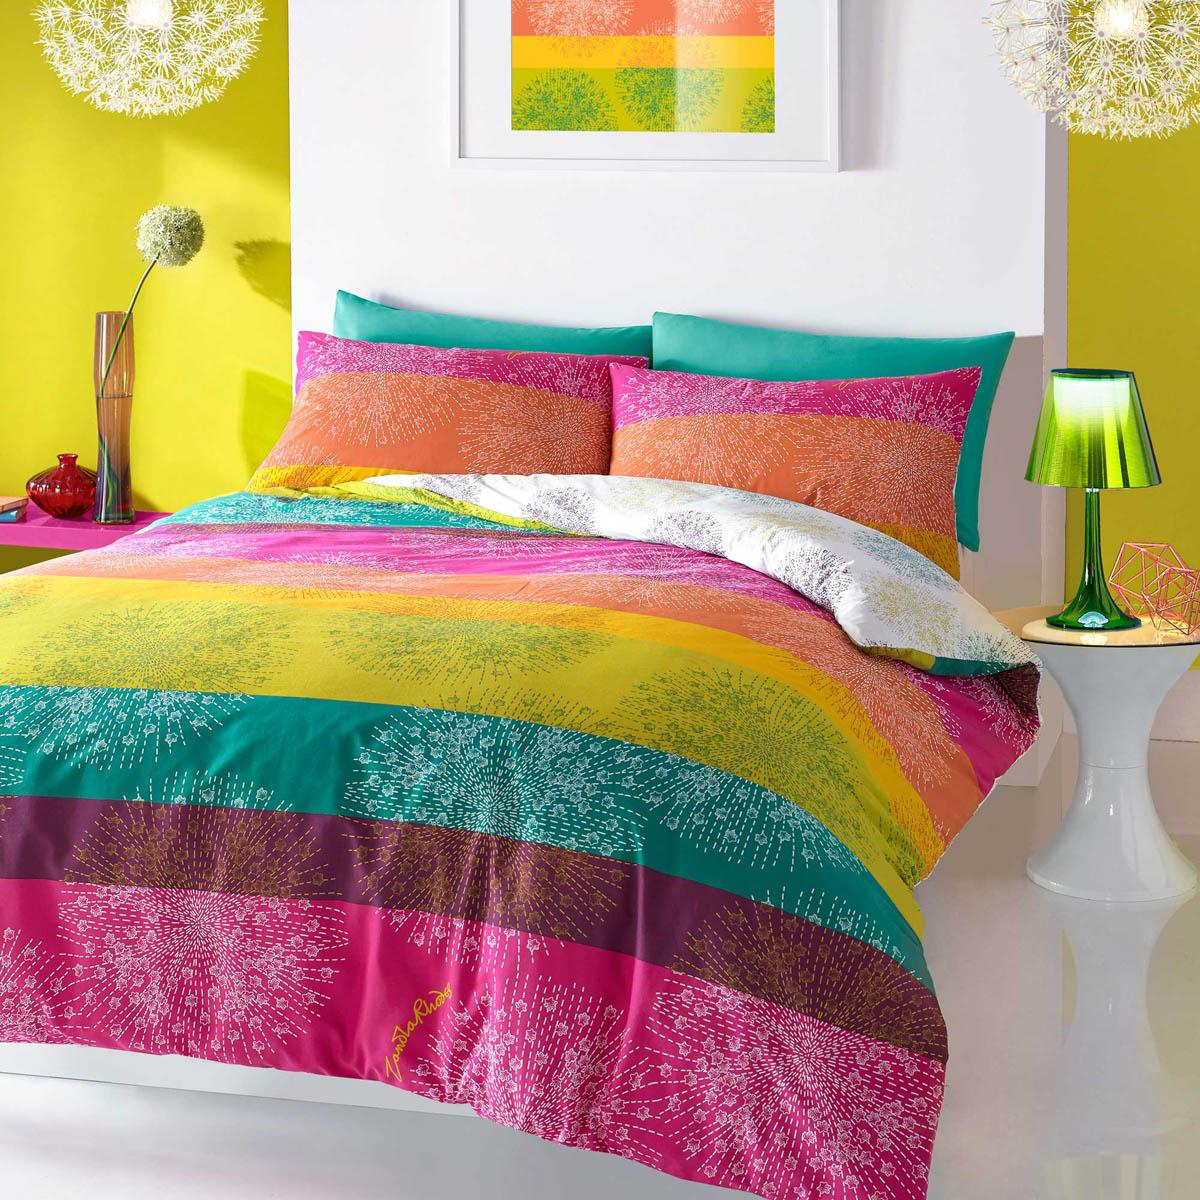 Image of: Use Bright Colorful Bedding Sets